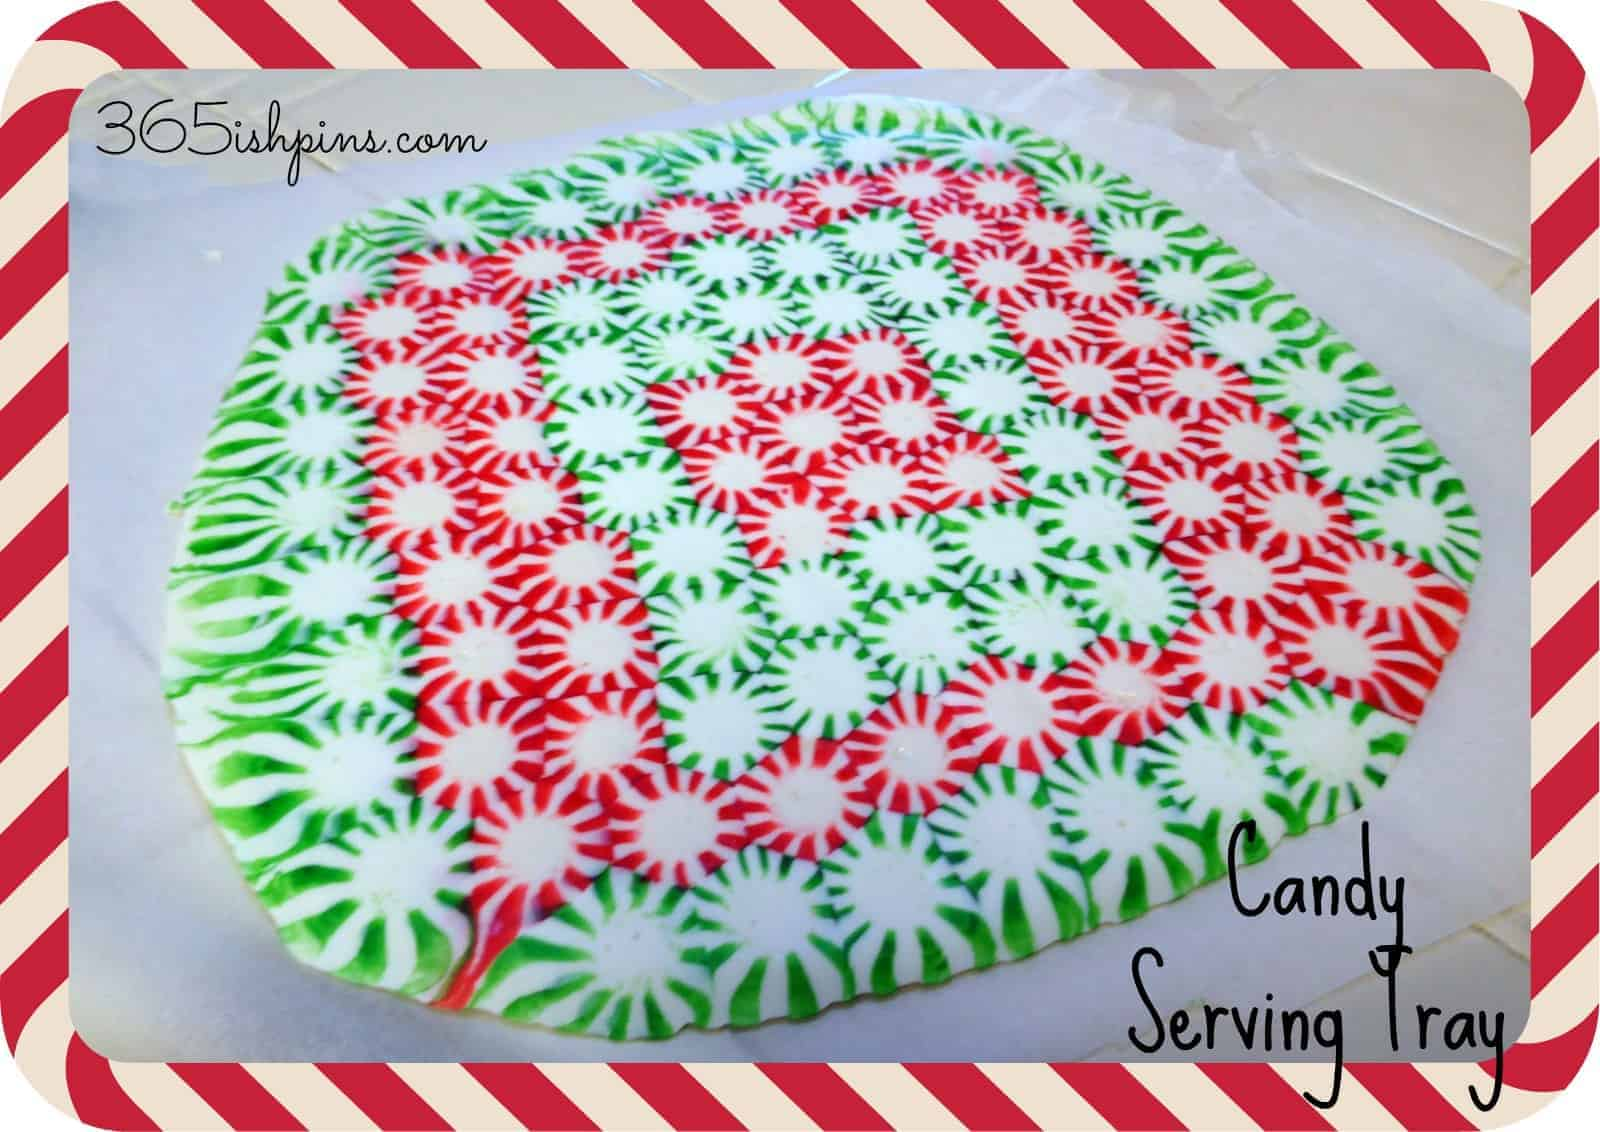 candy serving tray